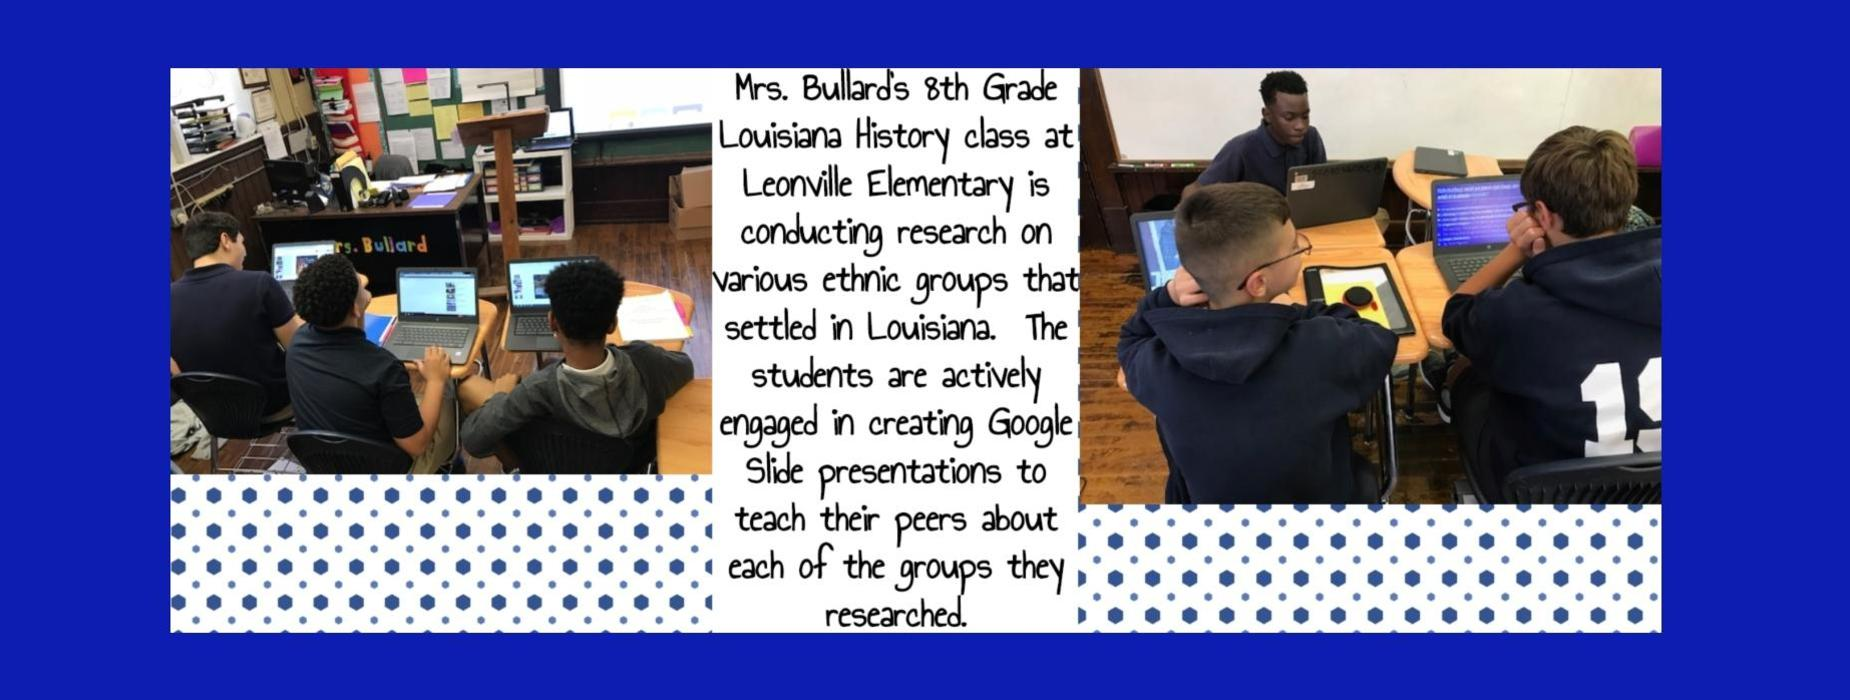 Mrs. Bullard's 8th Grade Louisiana History class at Leonville Elementary is conducting research on various ethnic groups that settled in Louisiana.  The students are actively engaged in creating Google Slide presentations to teach their peers about each of the groups they researched.